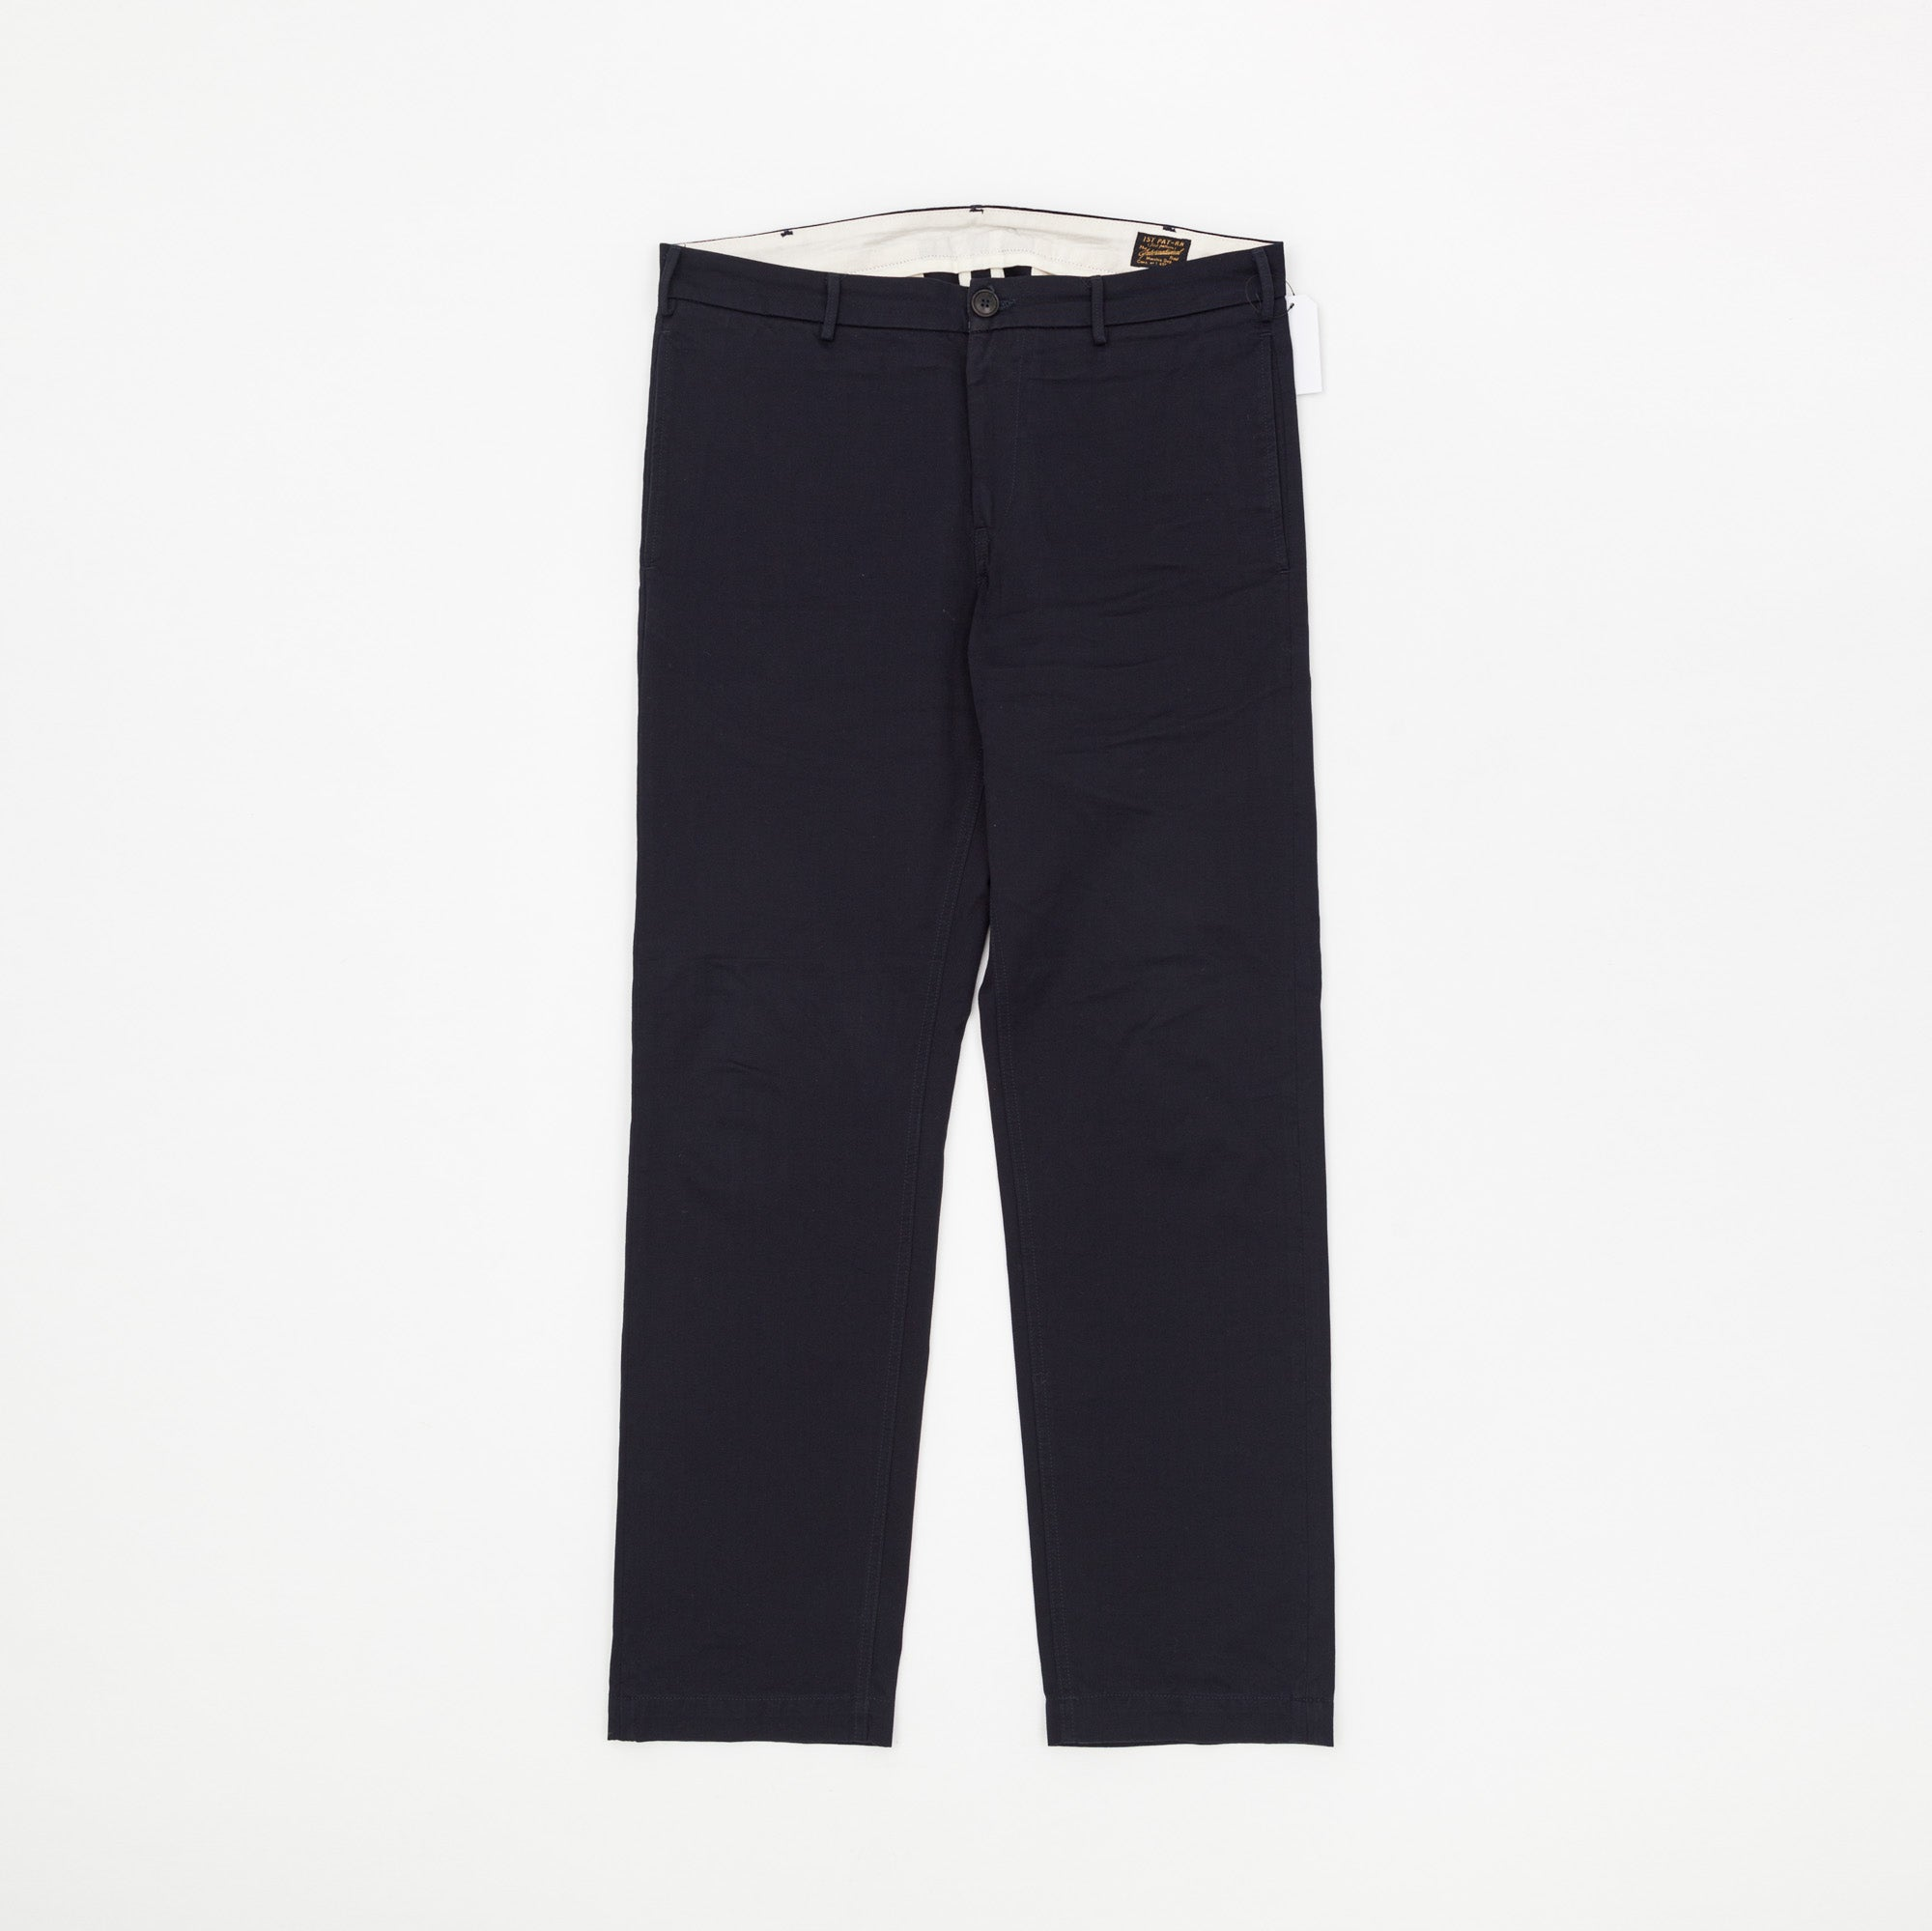 Cotton Trad Pant